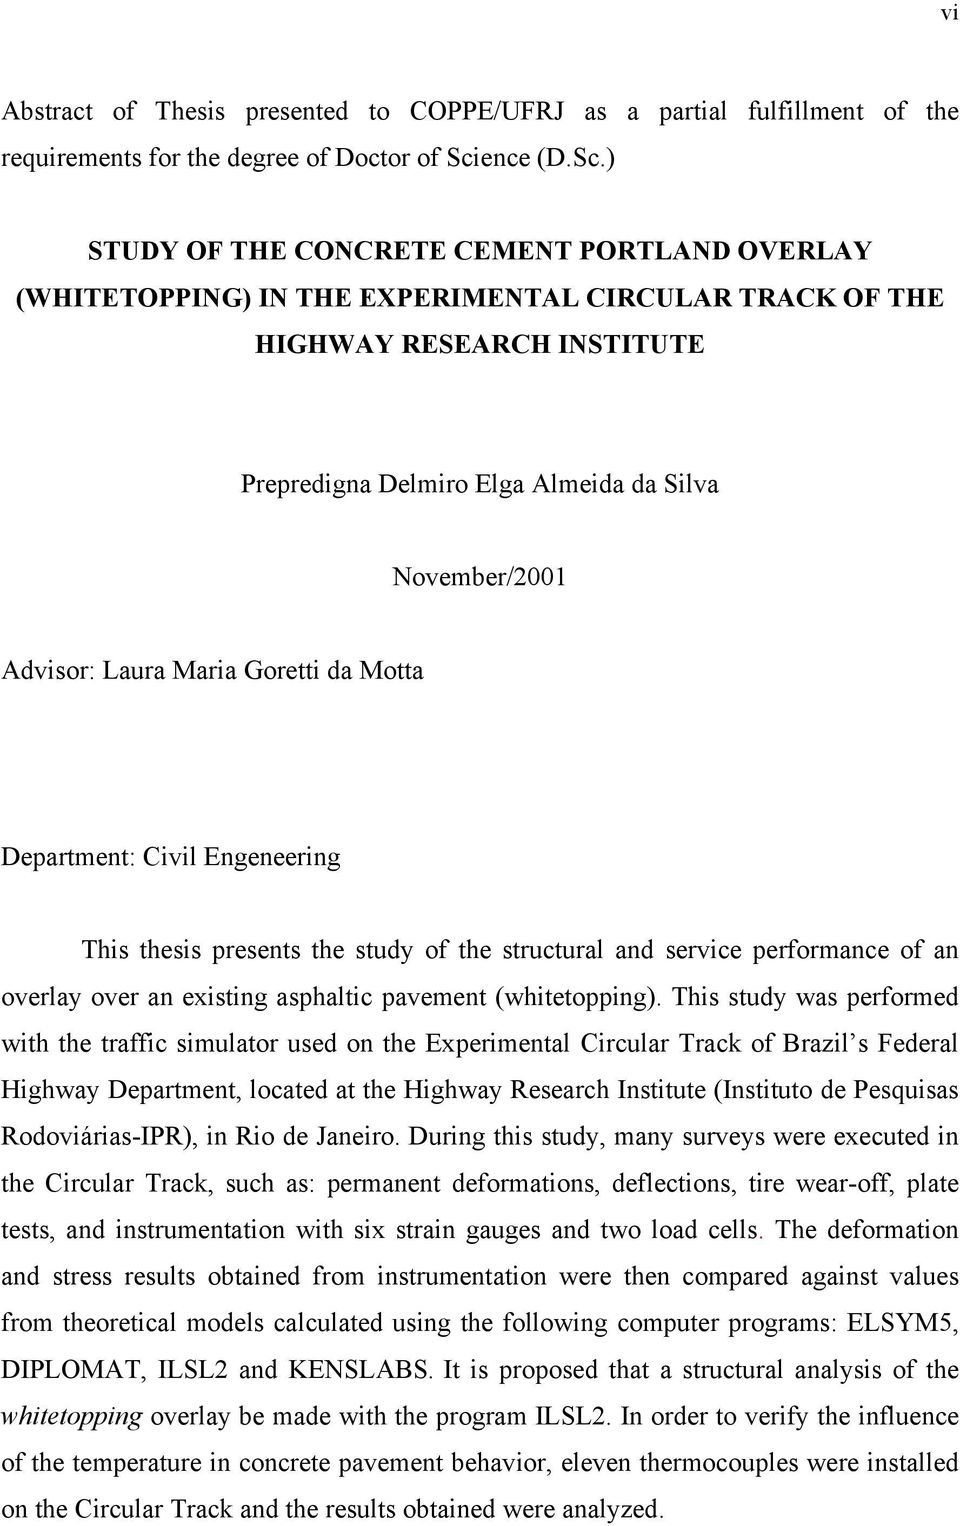 ) STUDY OF THE CONCRETE CEMENT PORTLAND OVERLAY (WHITETOPPING) IN THE EXPERIMENTAL CIRCULAR TRACK OF THE HIGHWAY RESEARCH INSTITUTE Prepredigna Delmiro Elga Almeida da Silva November/2001 Advisor: